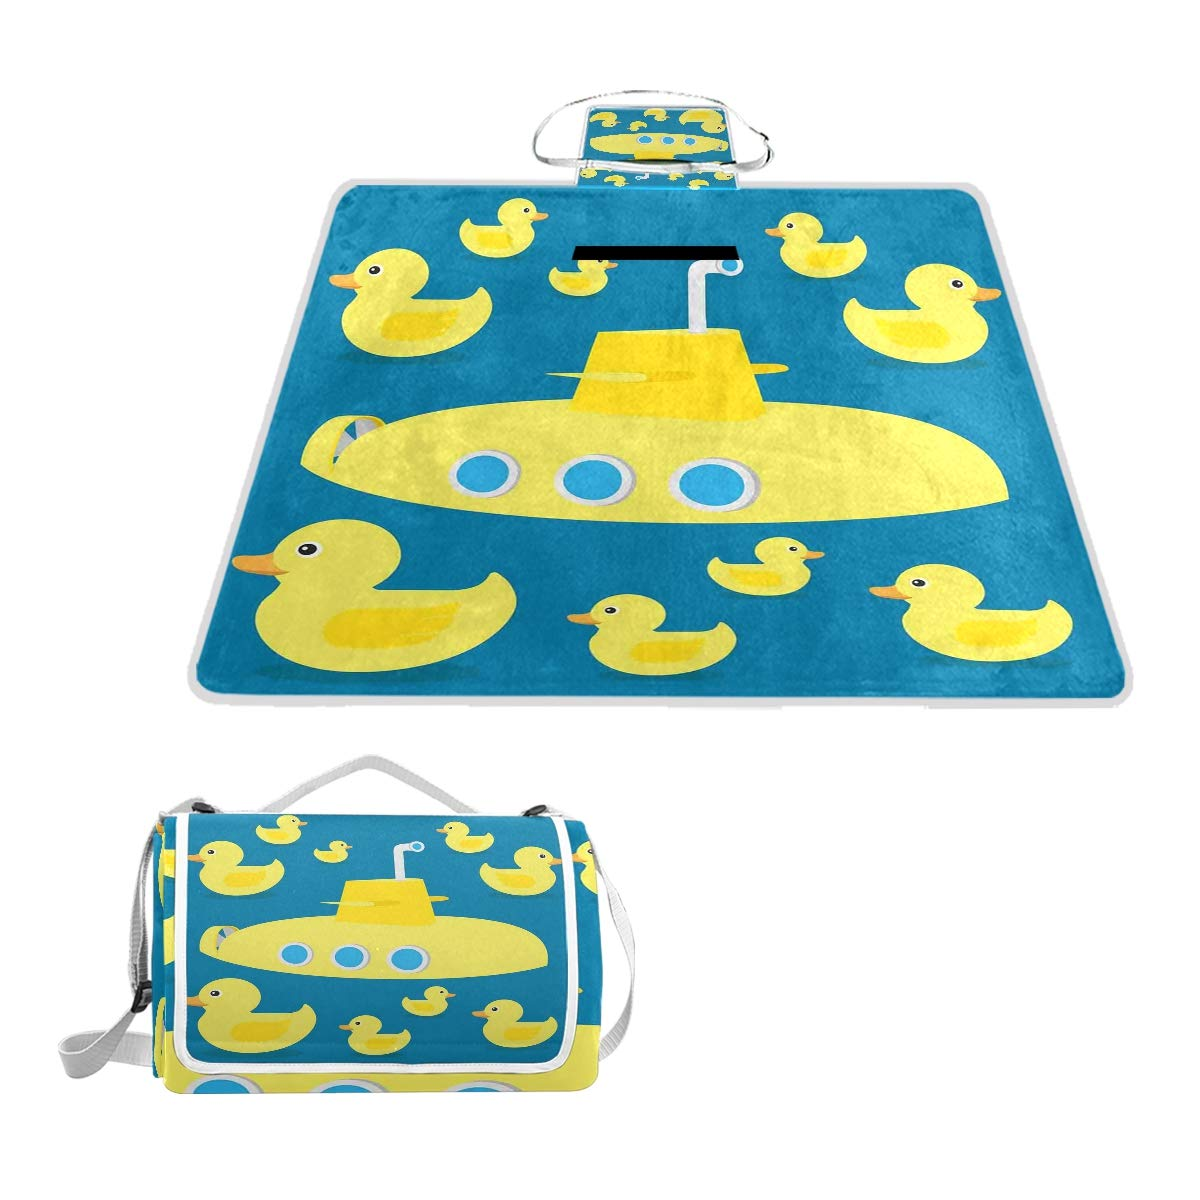 KVMV Duckies Swimming The Sea with Yellow Submarine Kids Party Nautical Print Picnic Mat Sandproof and Waterproof Outdoor Picnic Blanket for Camping Hiking Beach Grass Travel by KVMV